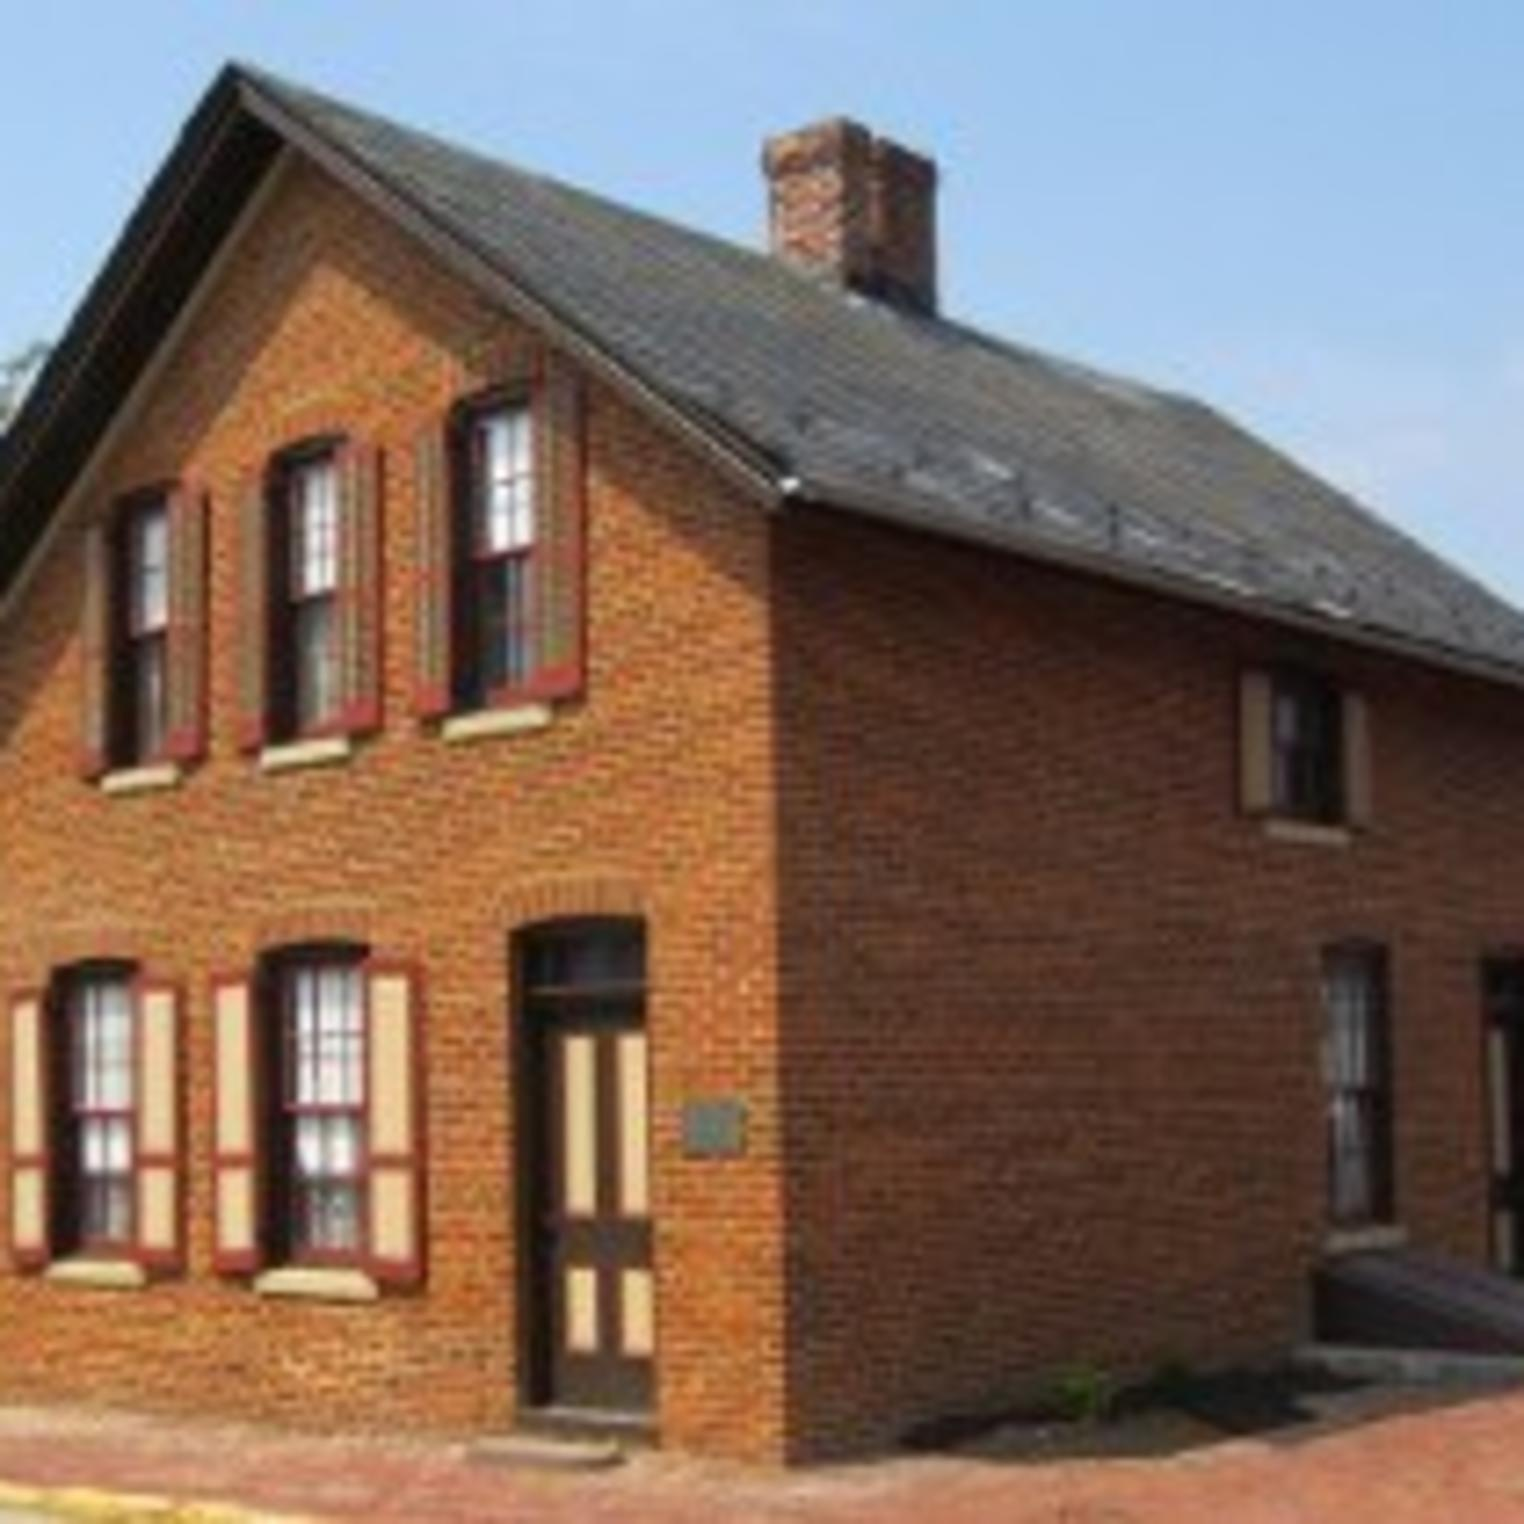 Stationmaster's House